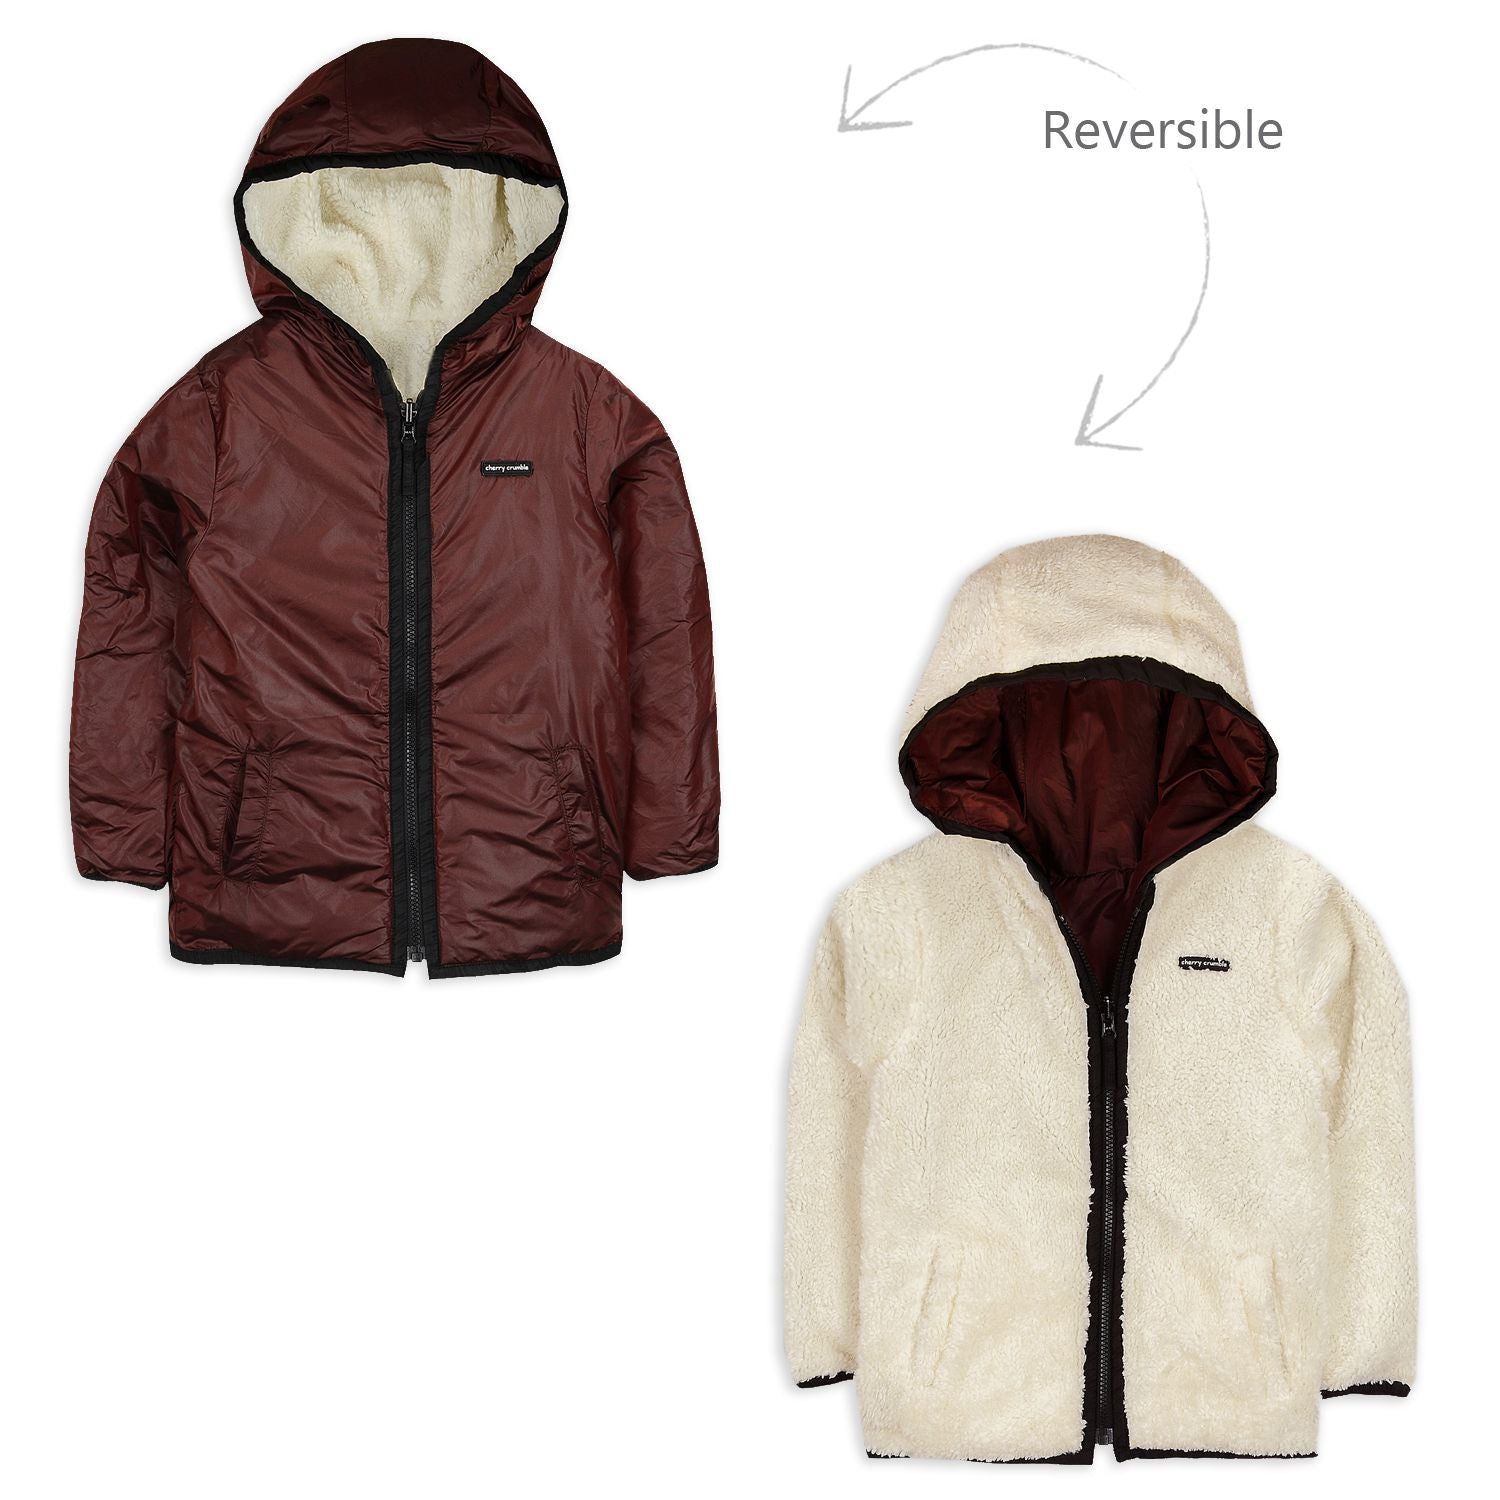 Vineyard Reversible Jacket for kids